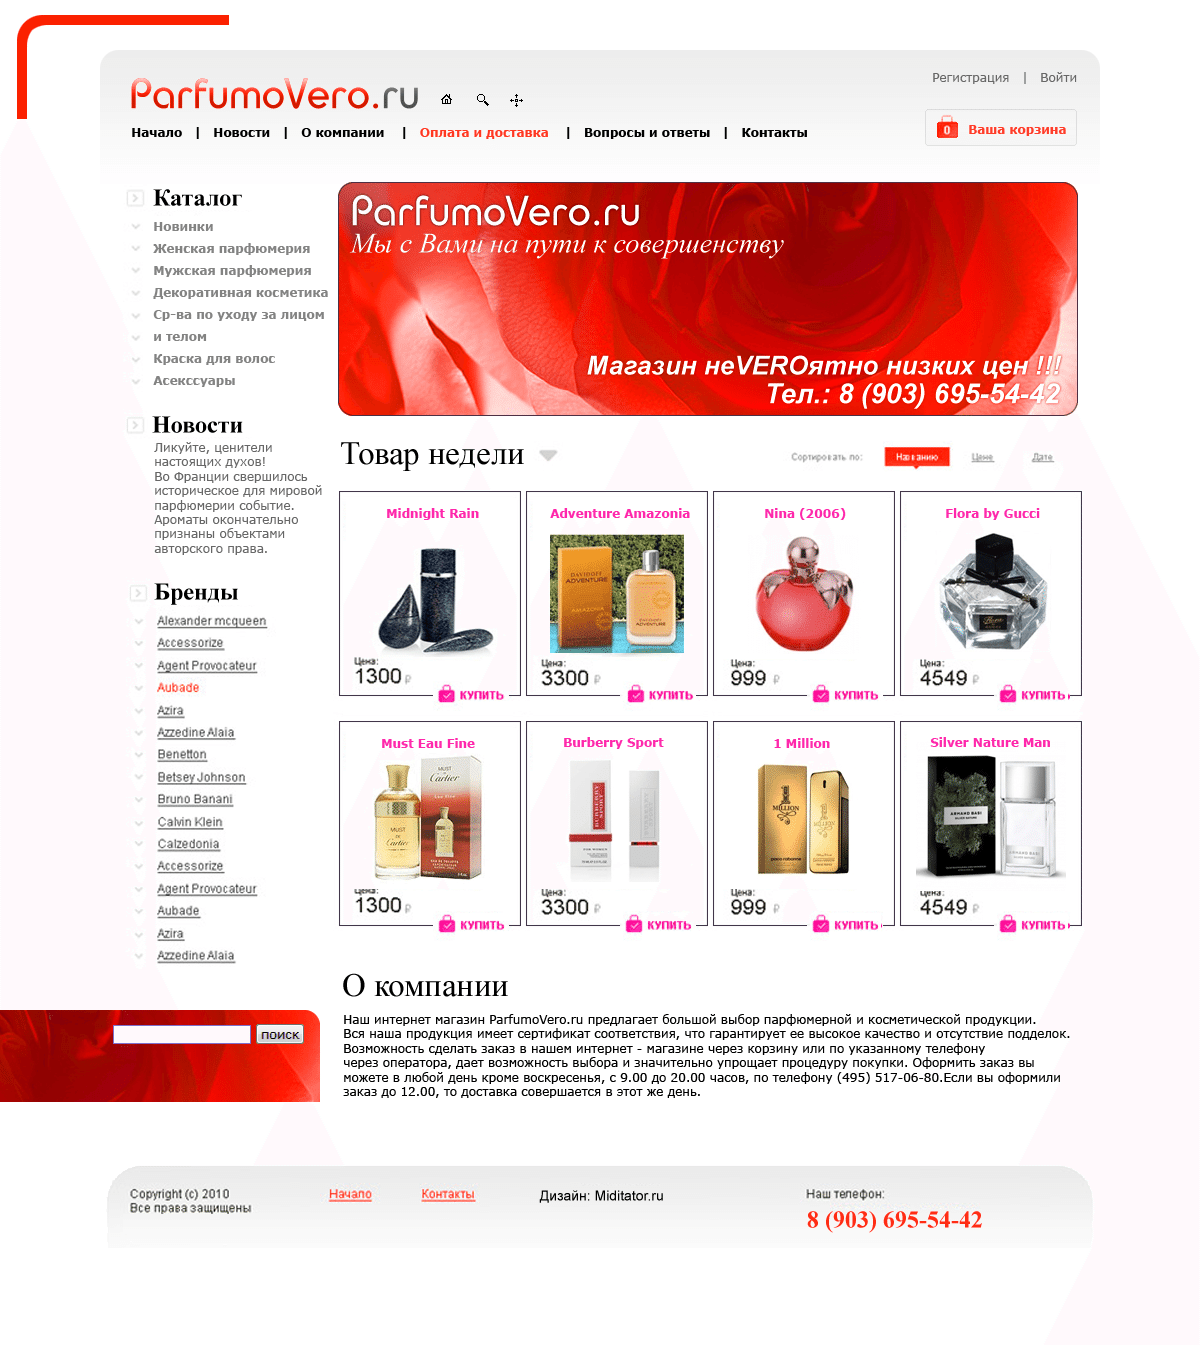 Perfumery and cosmetics online store site